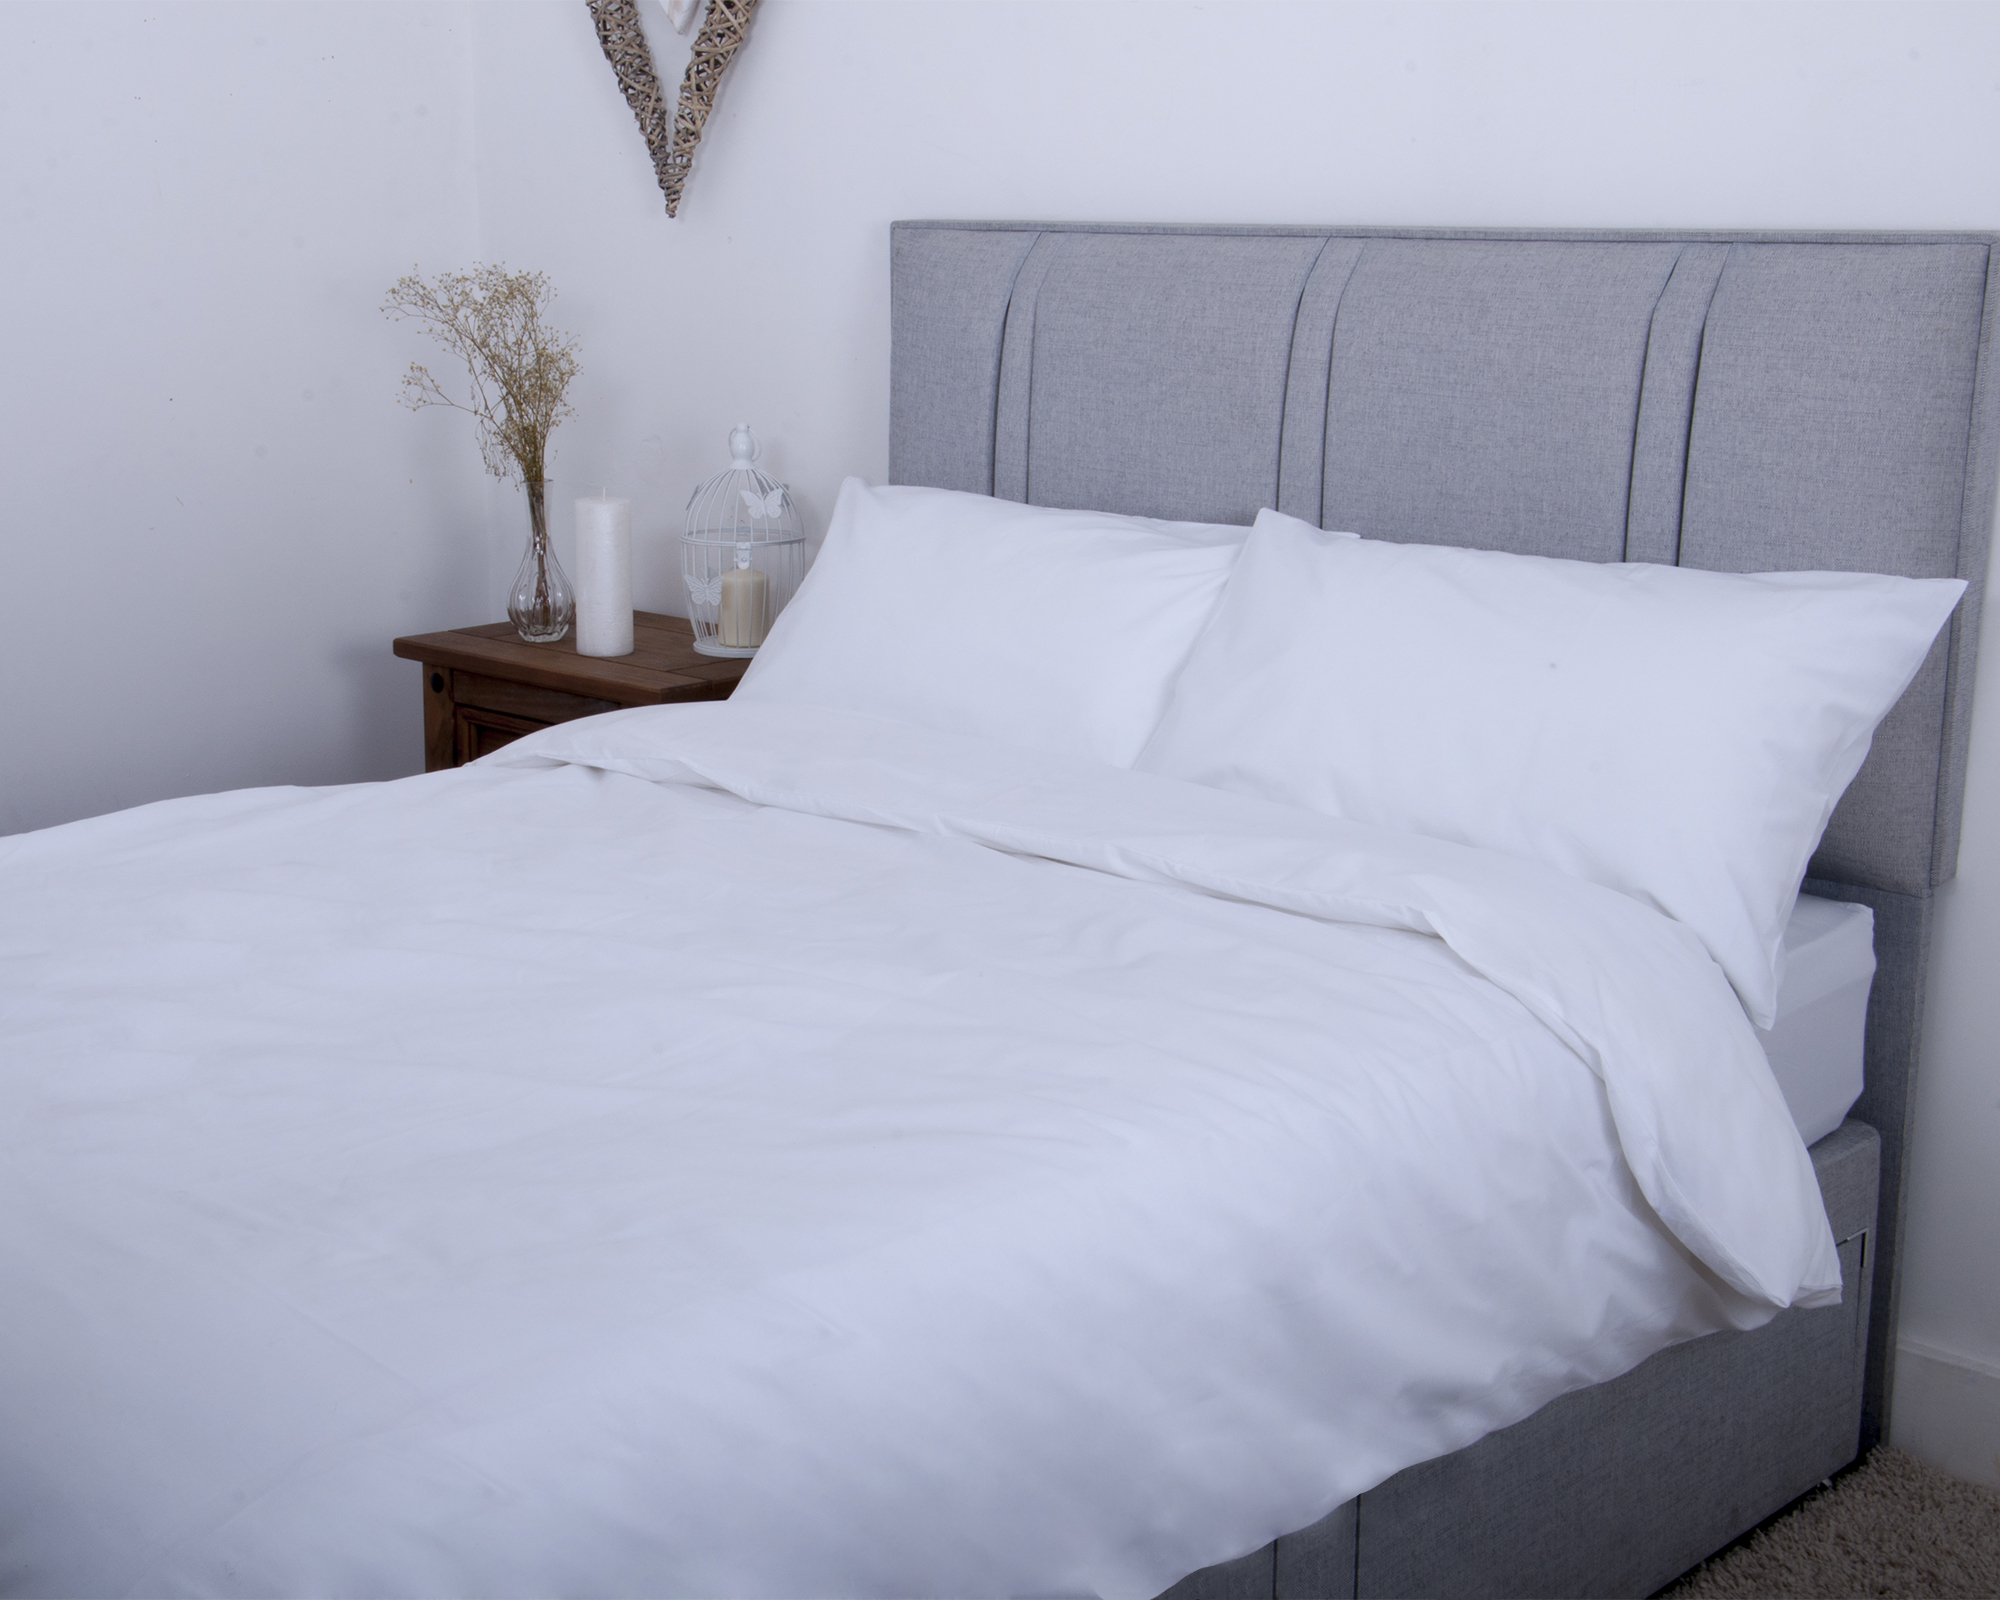 9641a5fcf2 200TC Luxurious Egyptian Cotton Duvet Set in White or Cream | Duvet Sets |  Bedding Direct UK